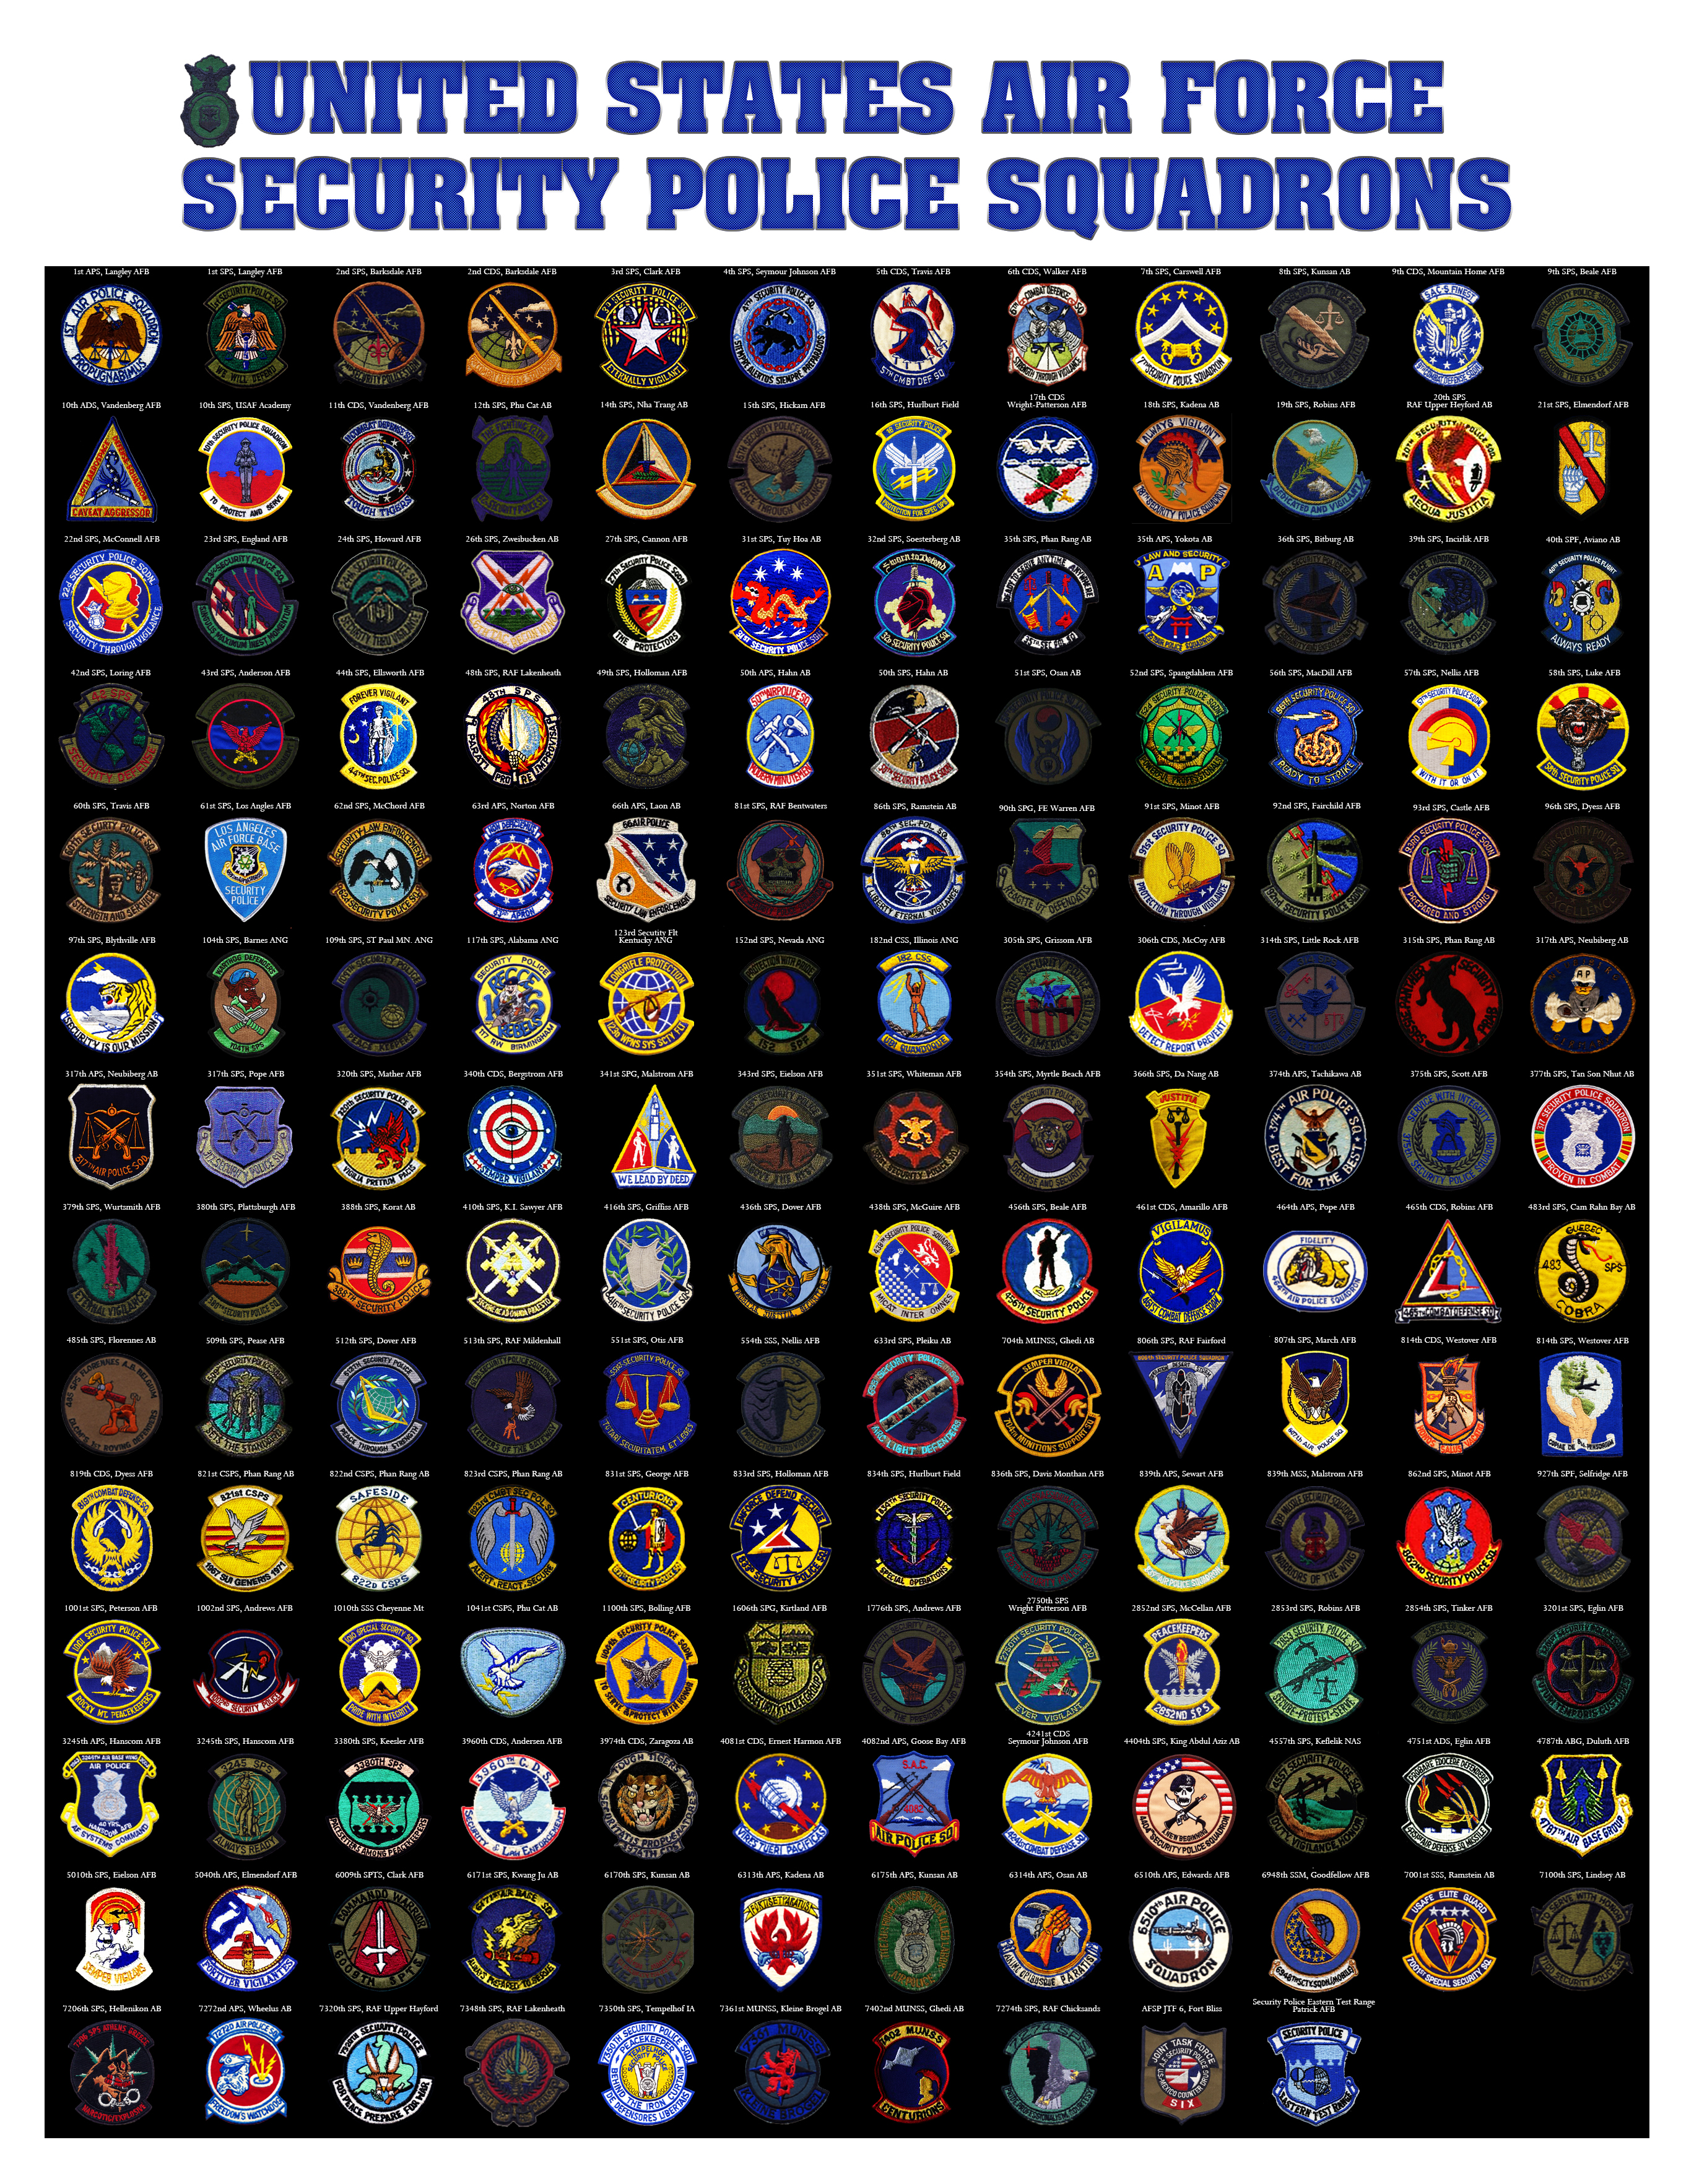 Securit Police Squadron Patch Poster Final By